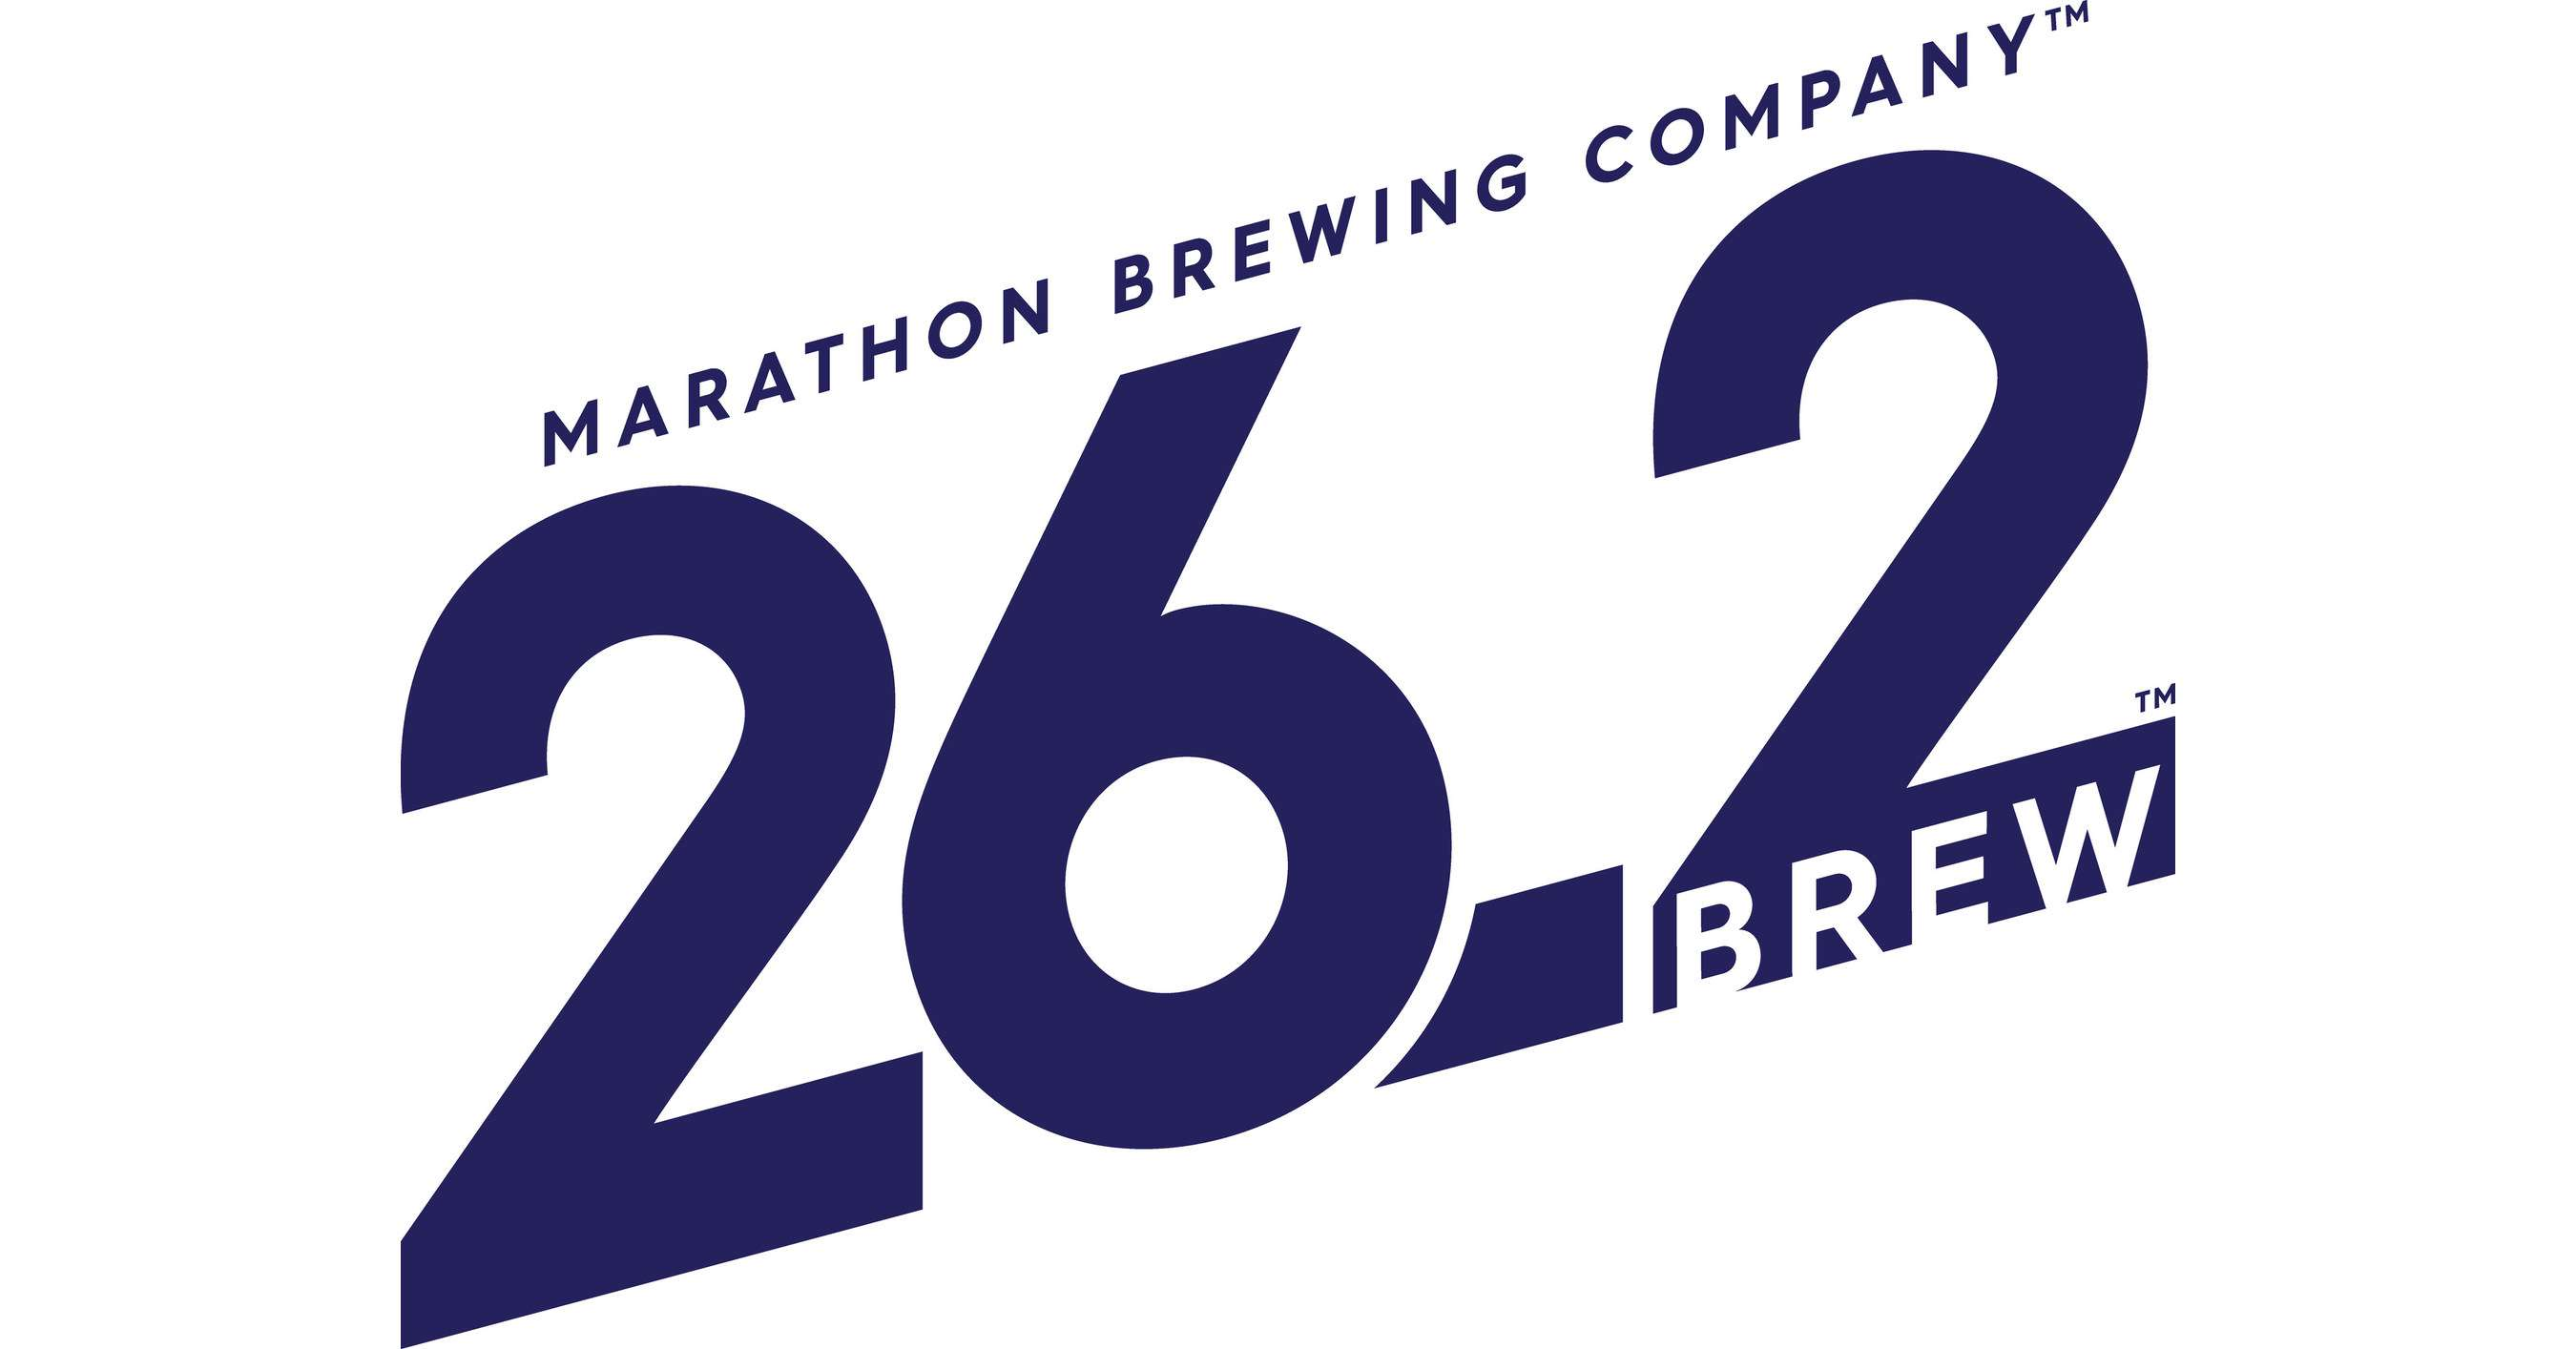 logo for Marathon Brewing Company